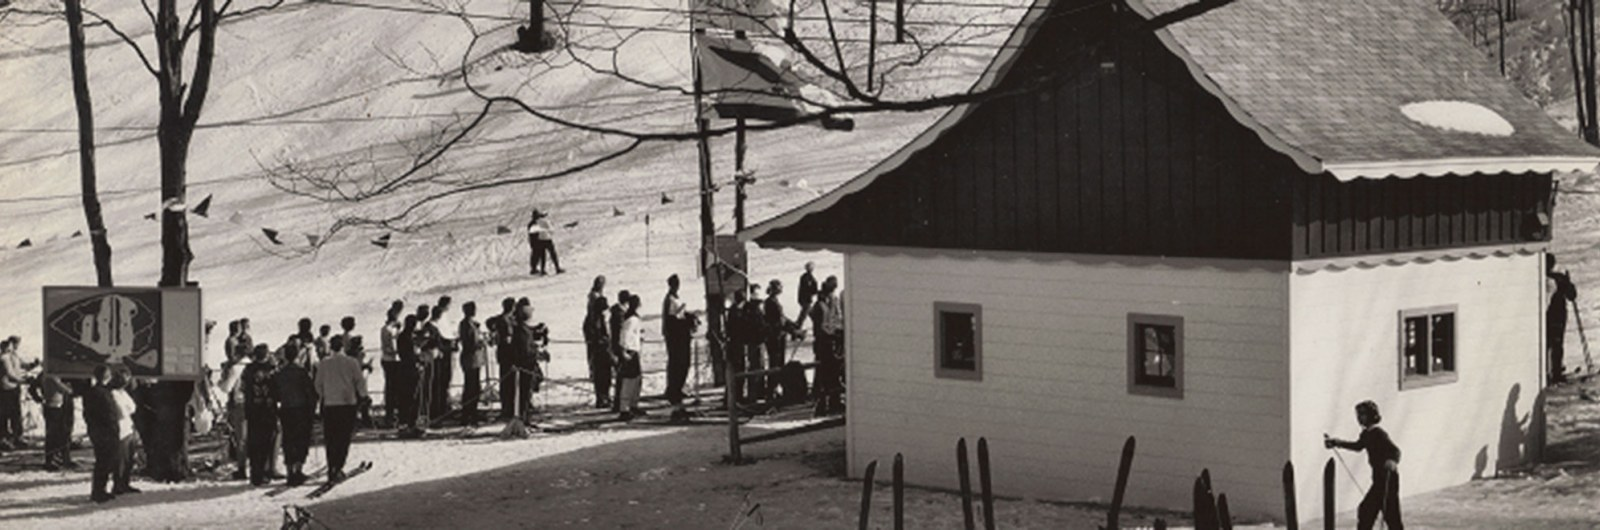 Historical photo of skiers at Holiday Valley mountain resort